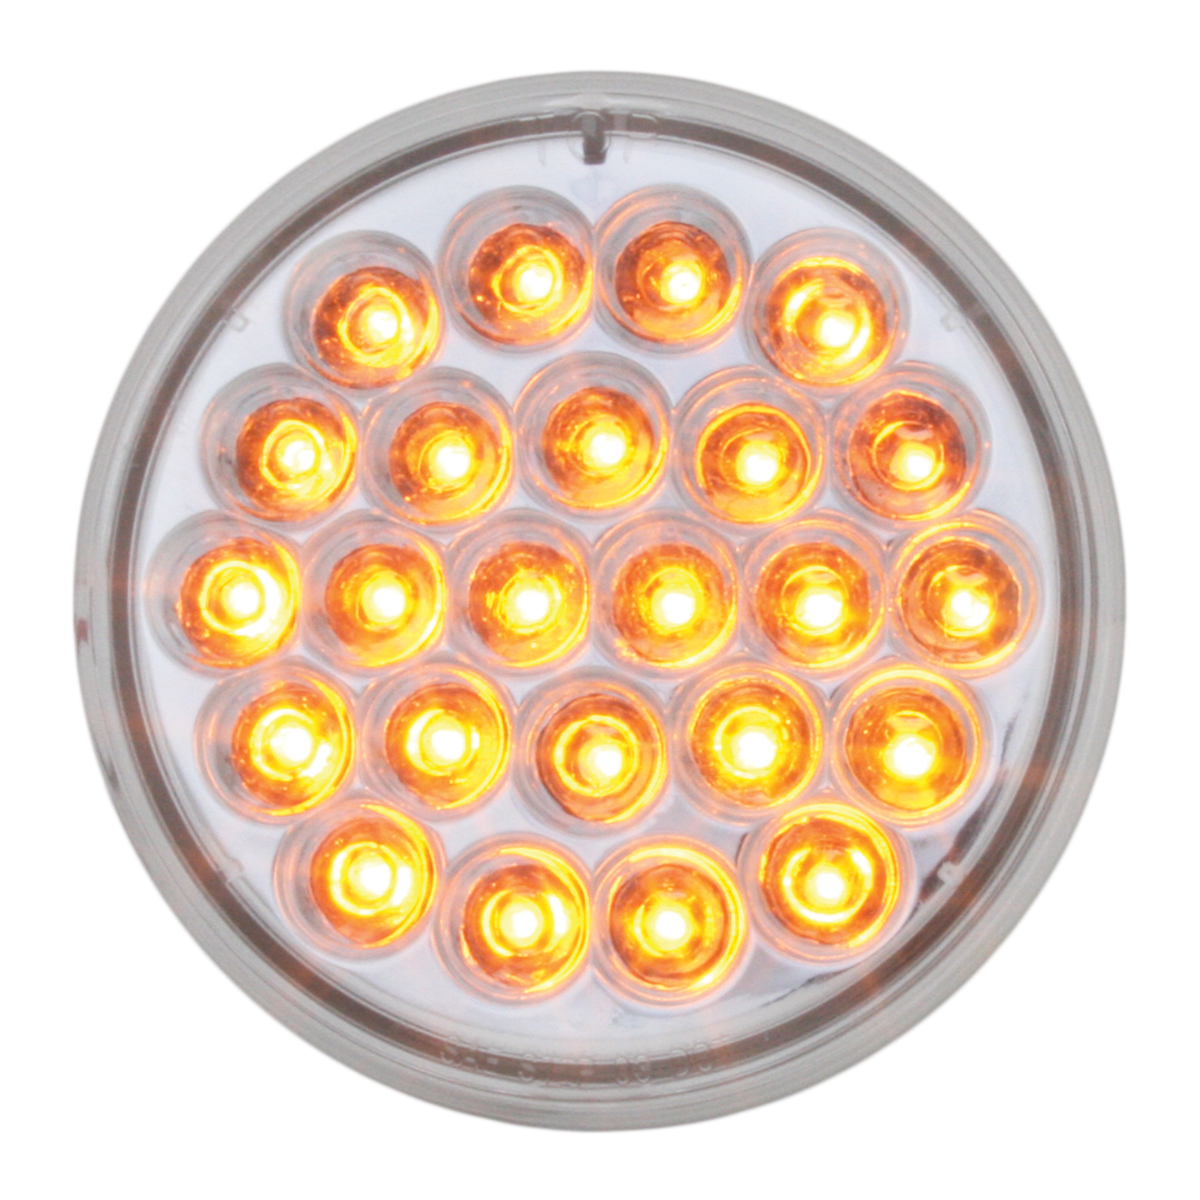 "#78271 4"" Round Pearl LED Flat Amber/Clear Light"